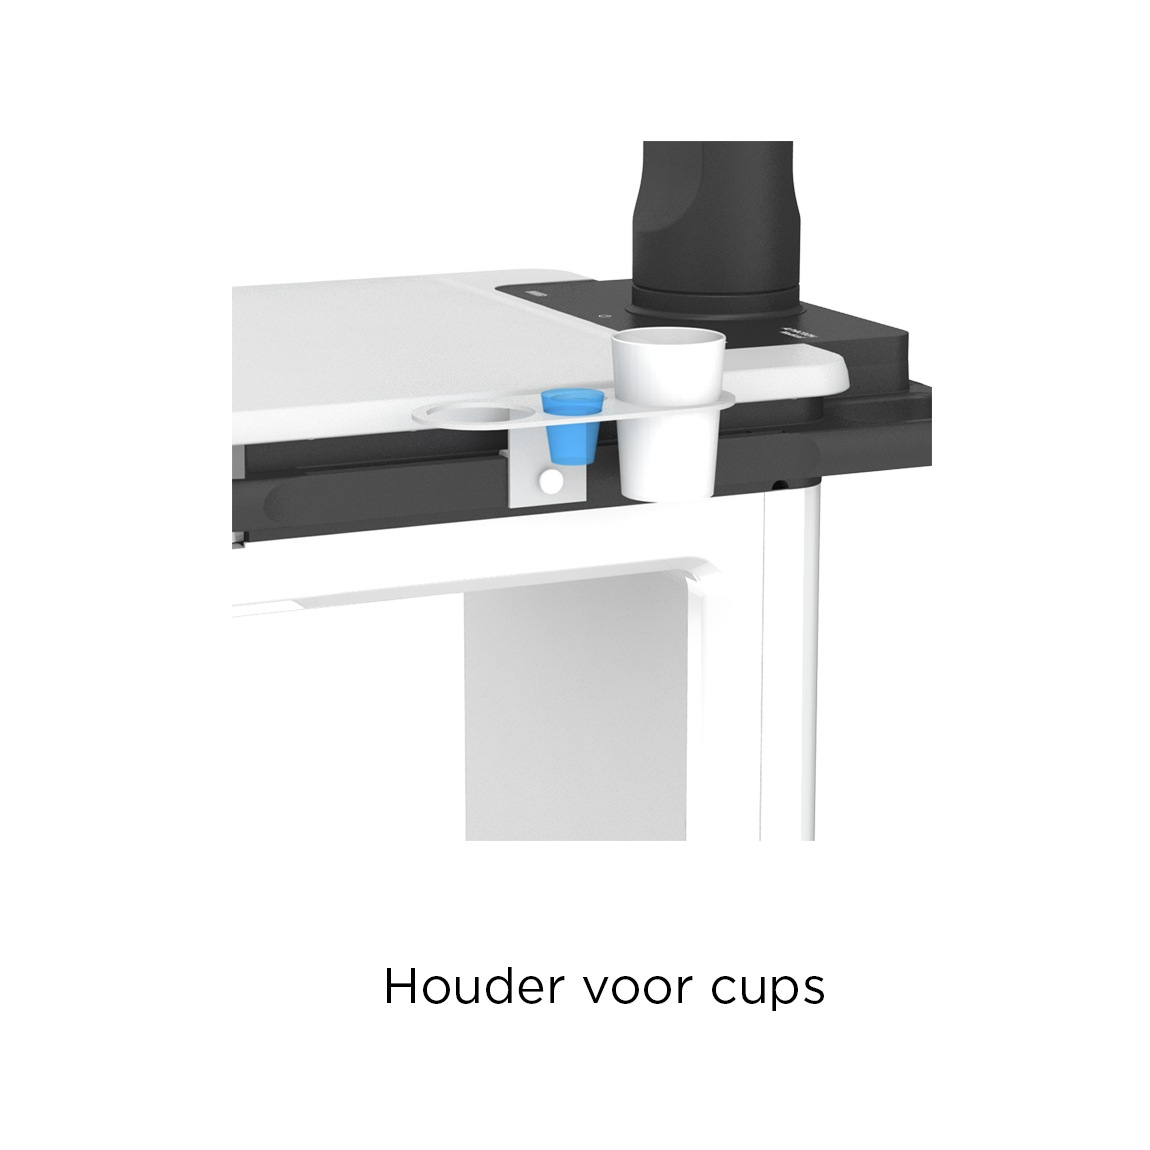 Holder for Cups